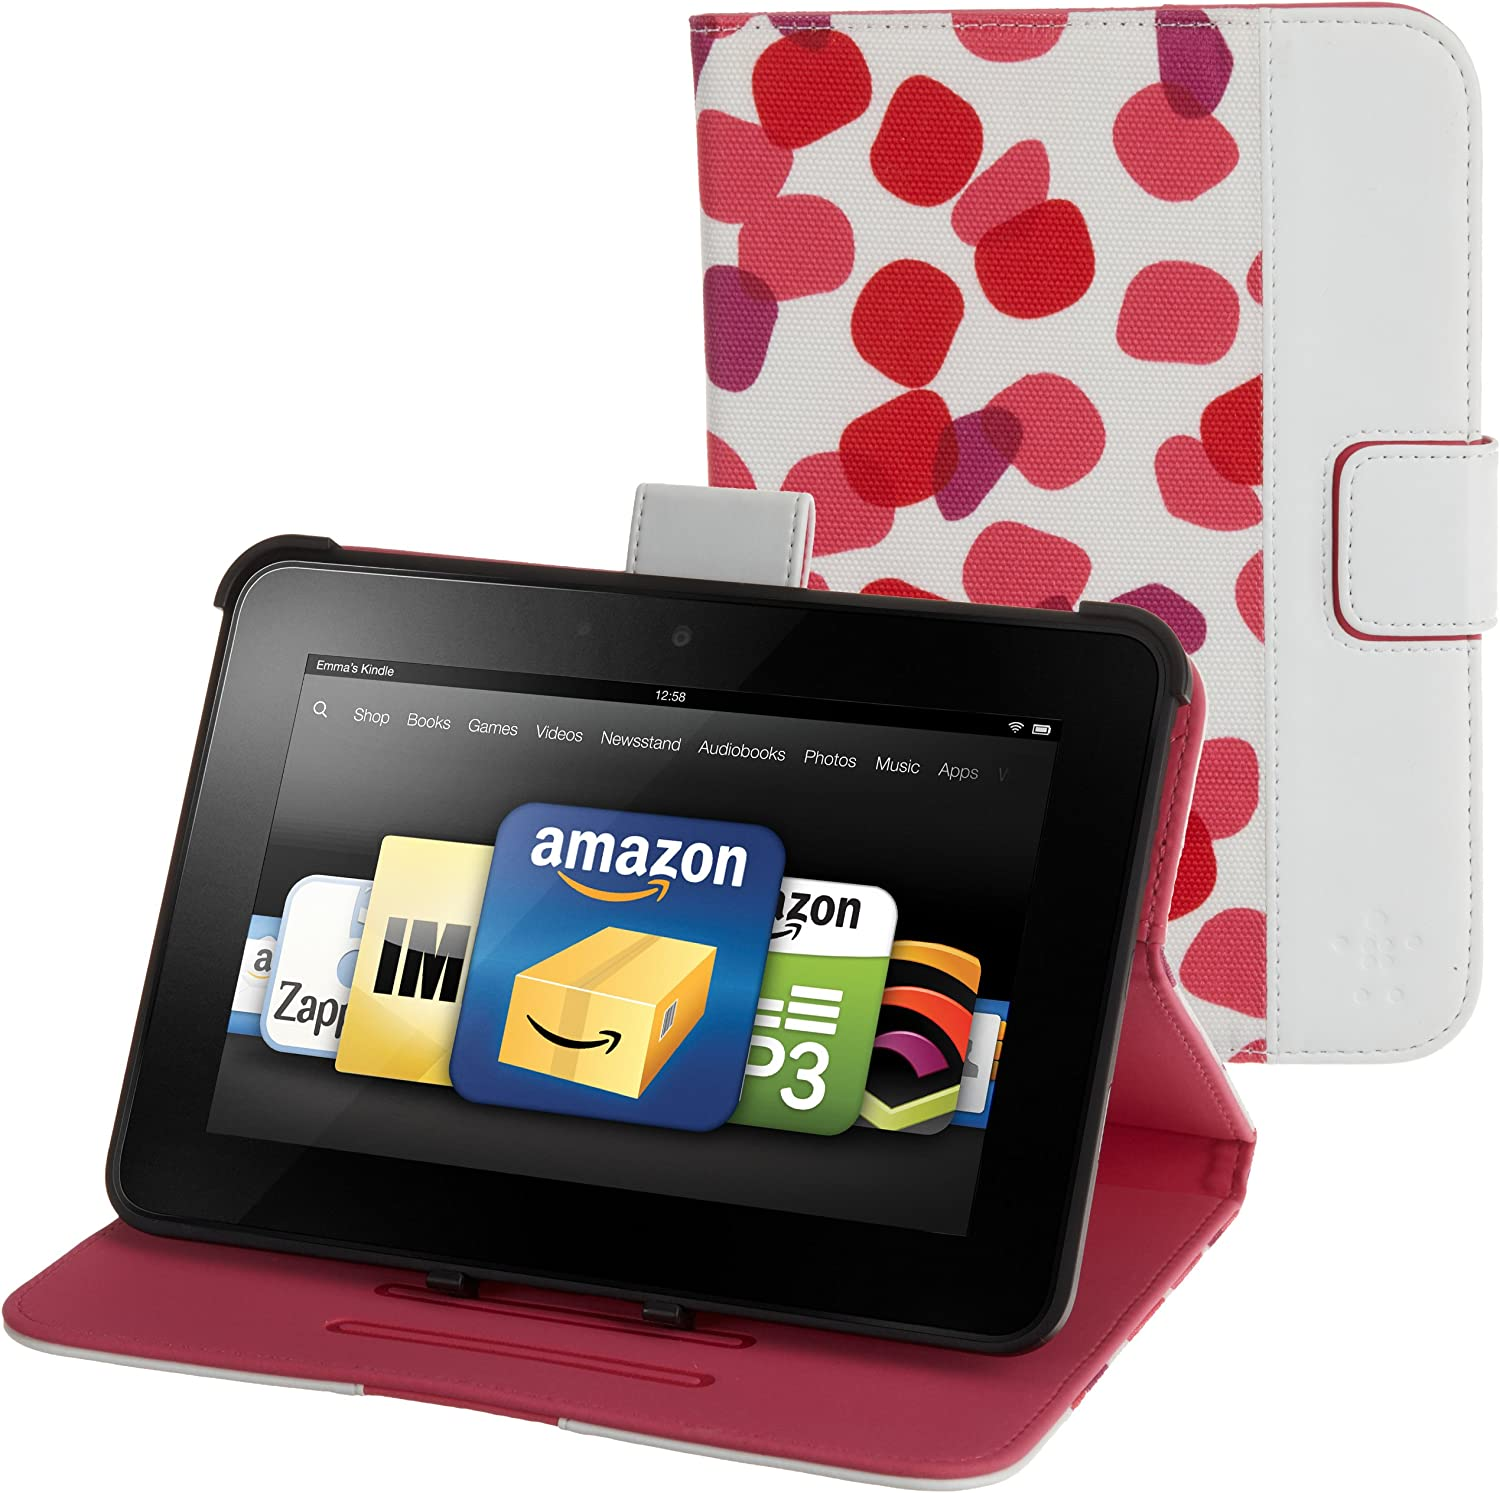 Topaz Belkin Petals Standing Cover for Kindle Fire HD 7 will only fit Kindle Fire HD 7